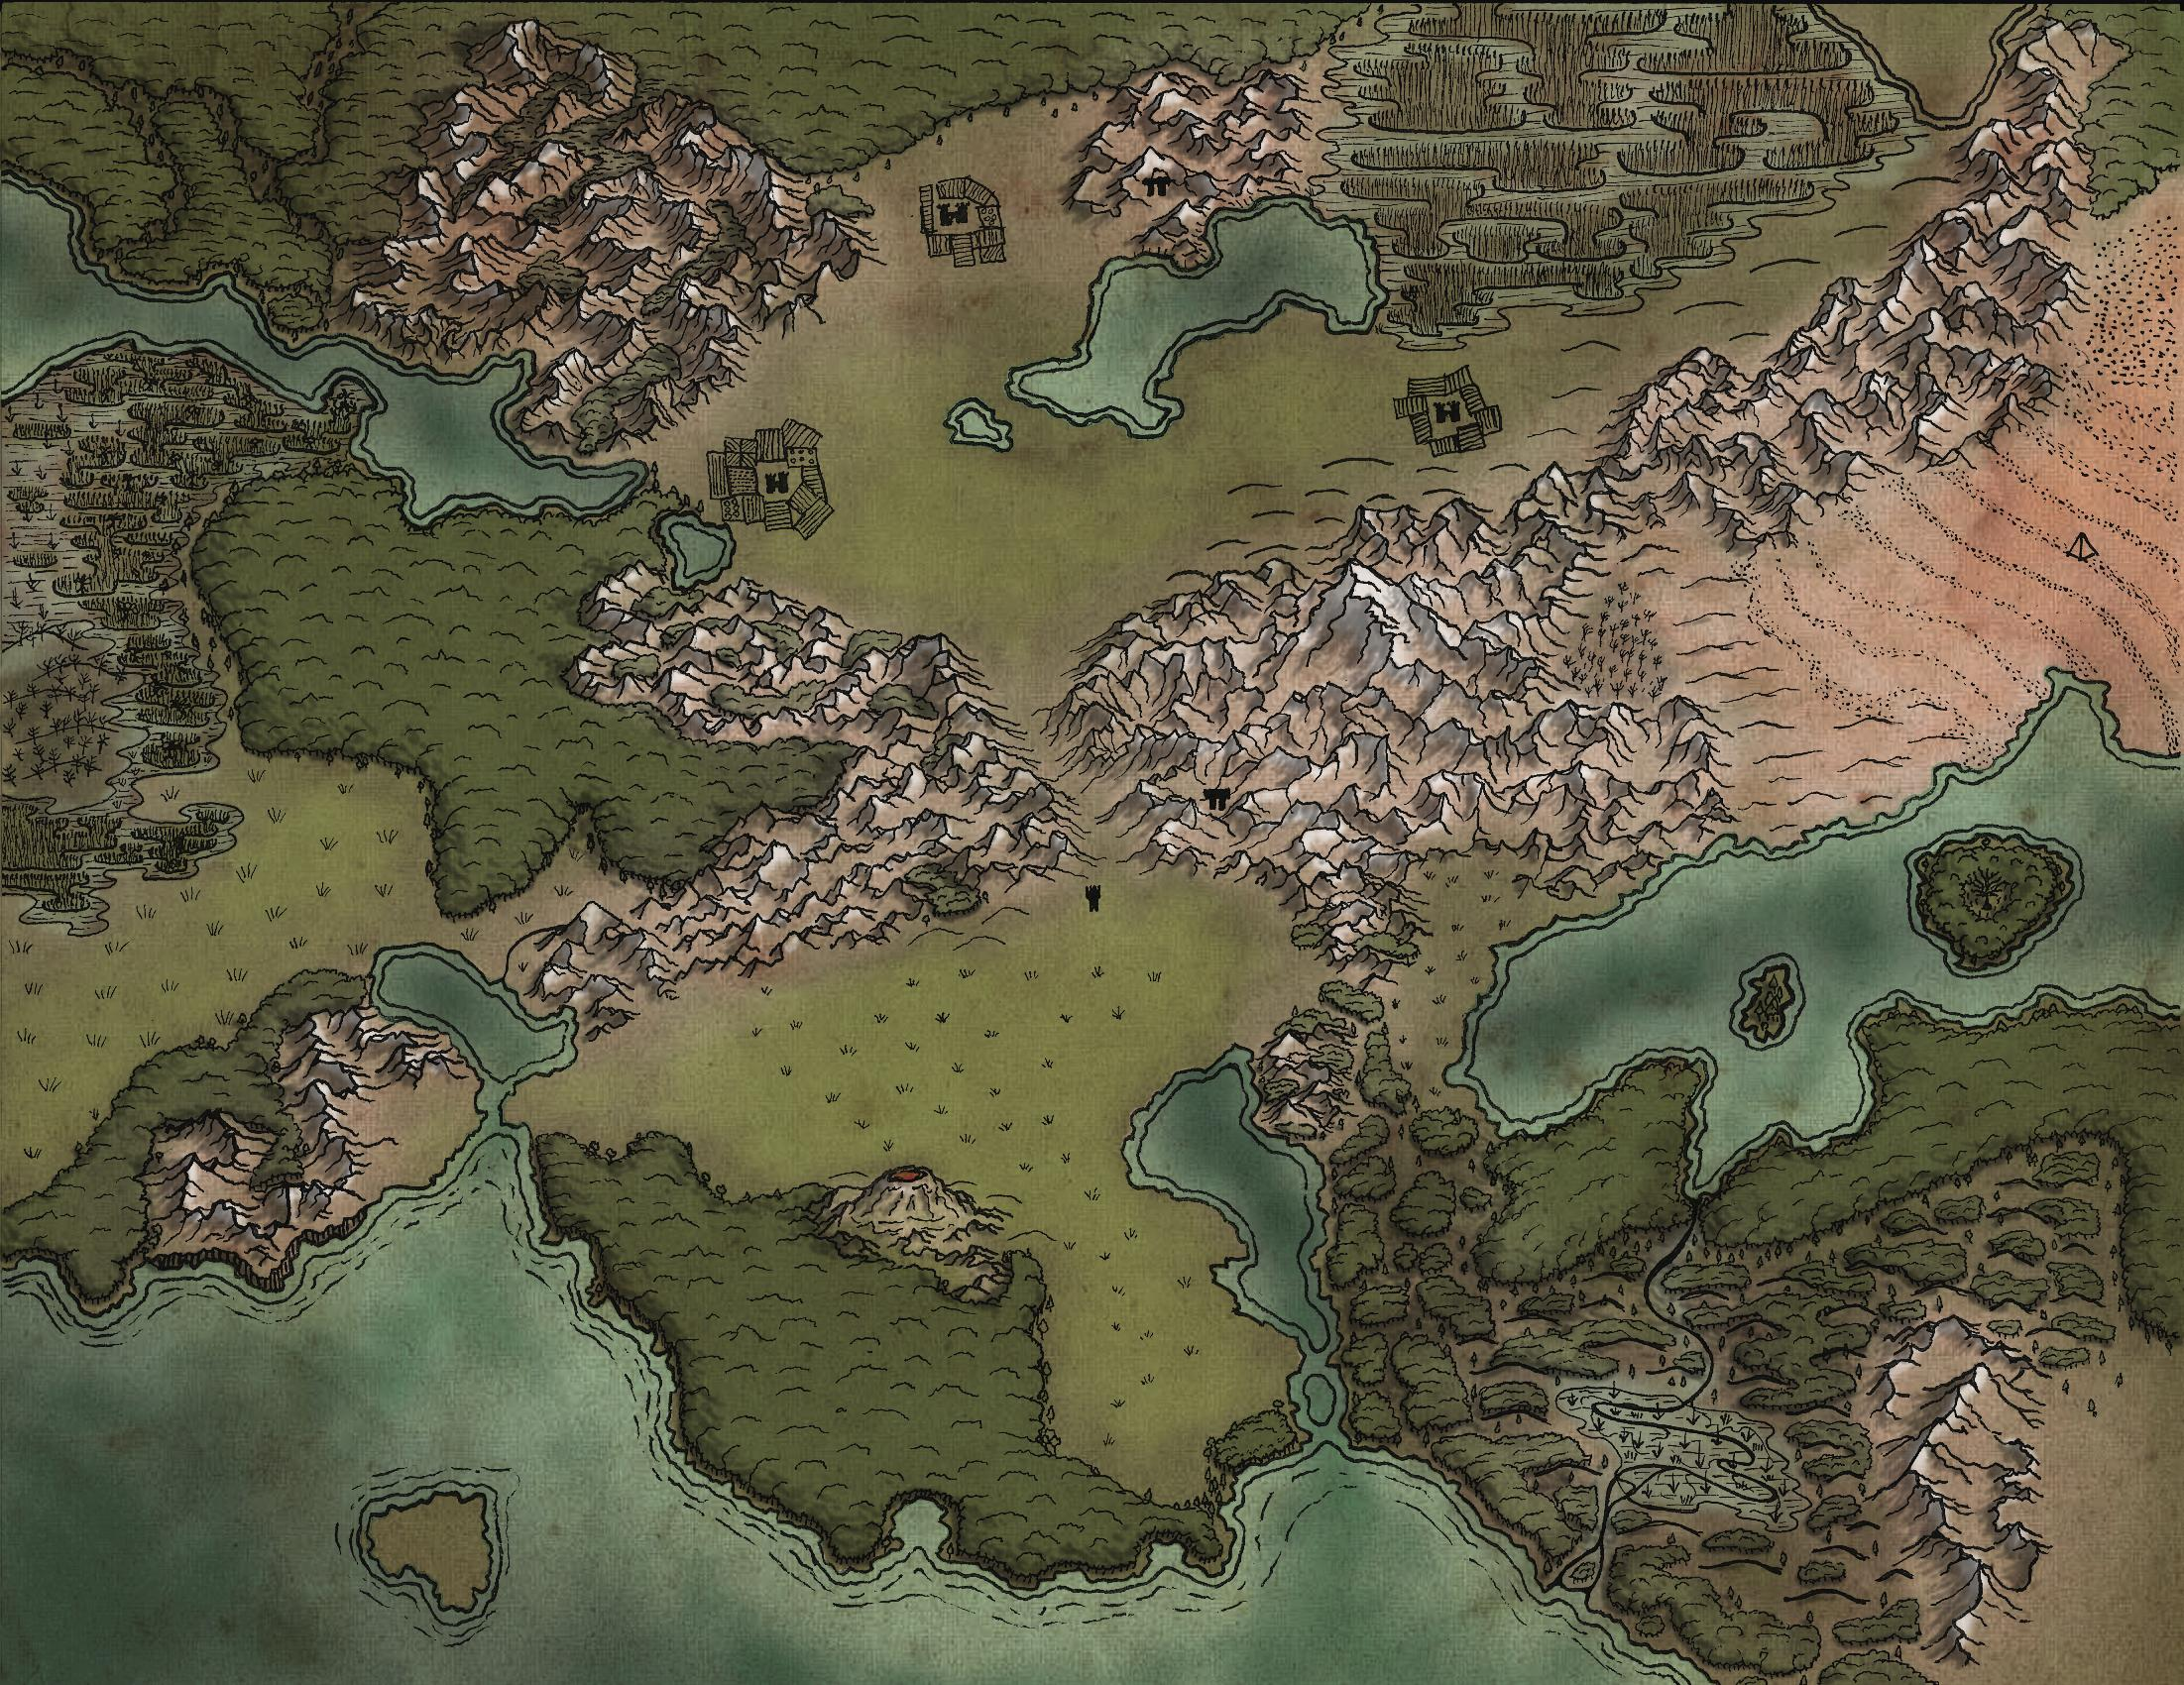 Digital Homebrew: Cartography